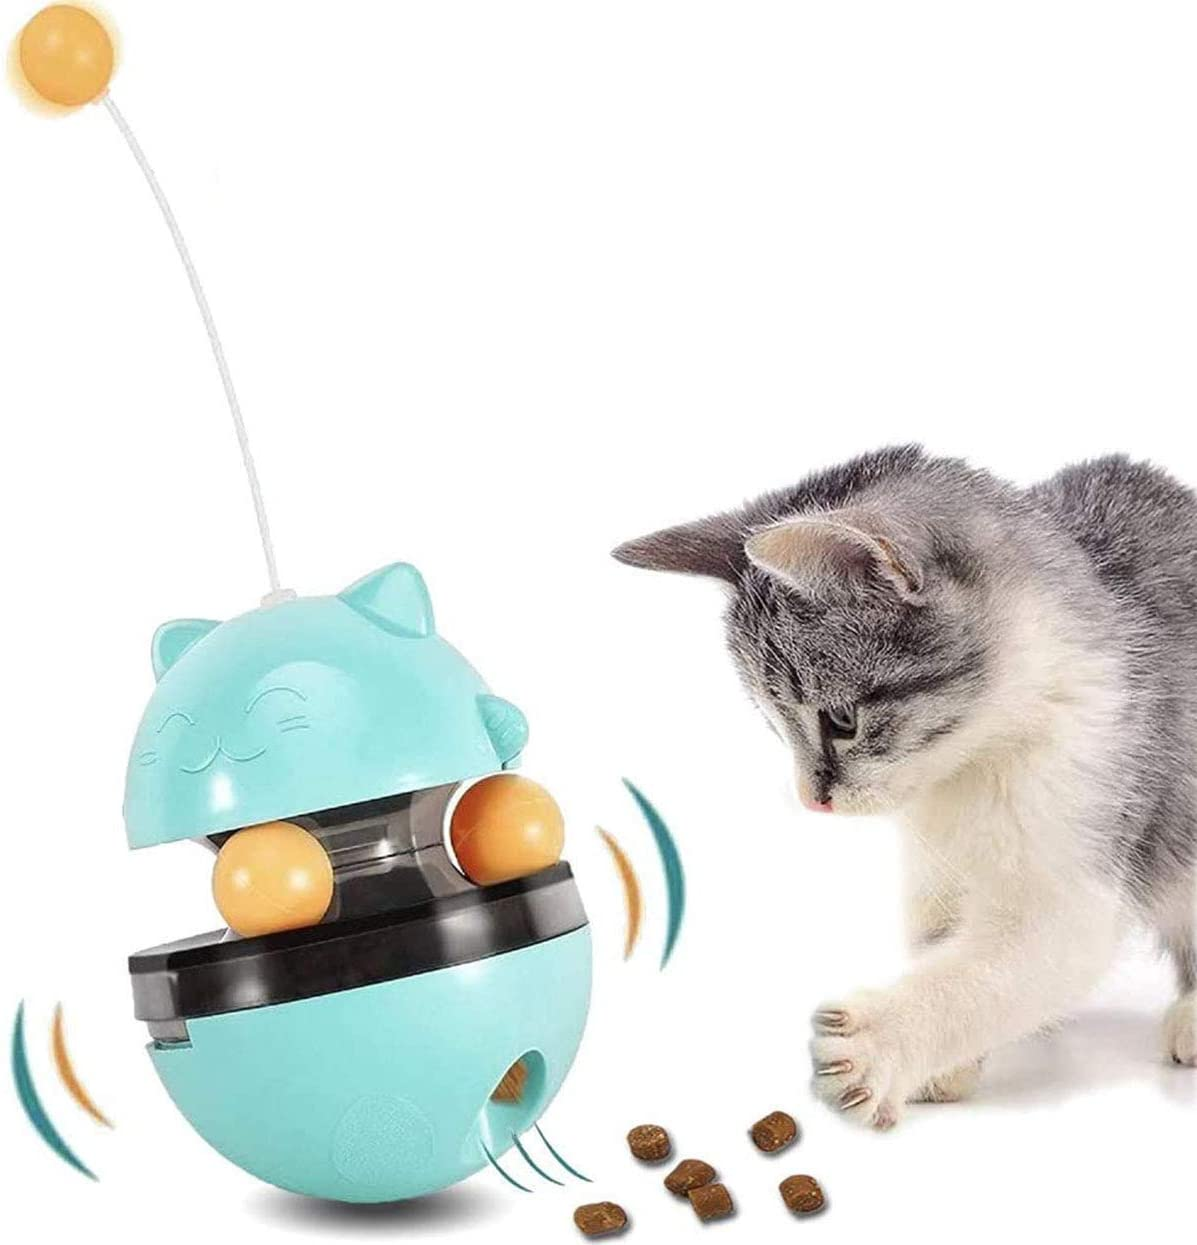 Dbzz Interactive Cat Toys Tumbler Leaking Food Ball Toys for Cat Exercise Game